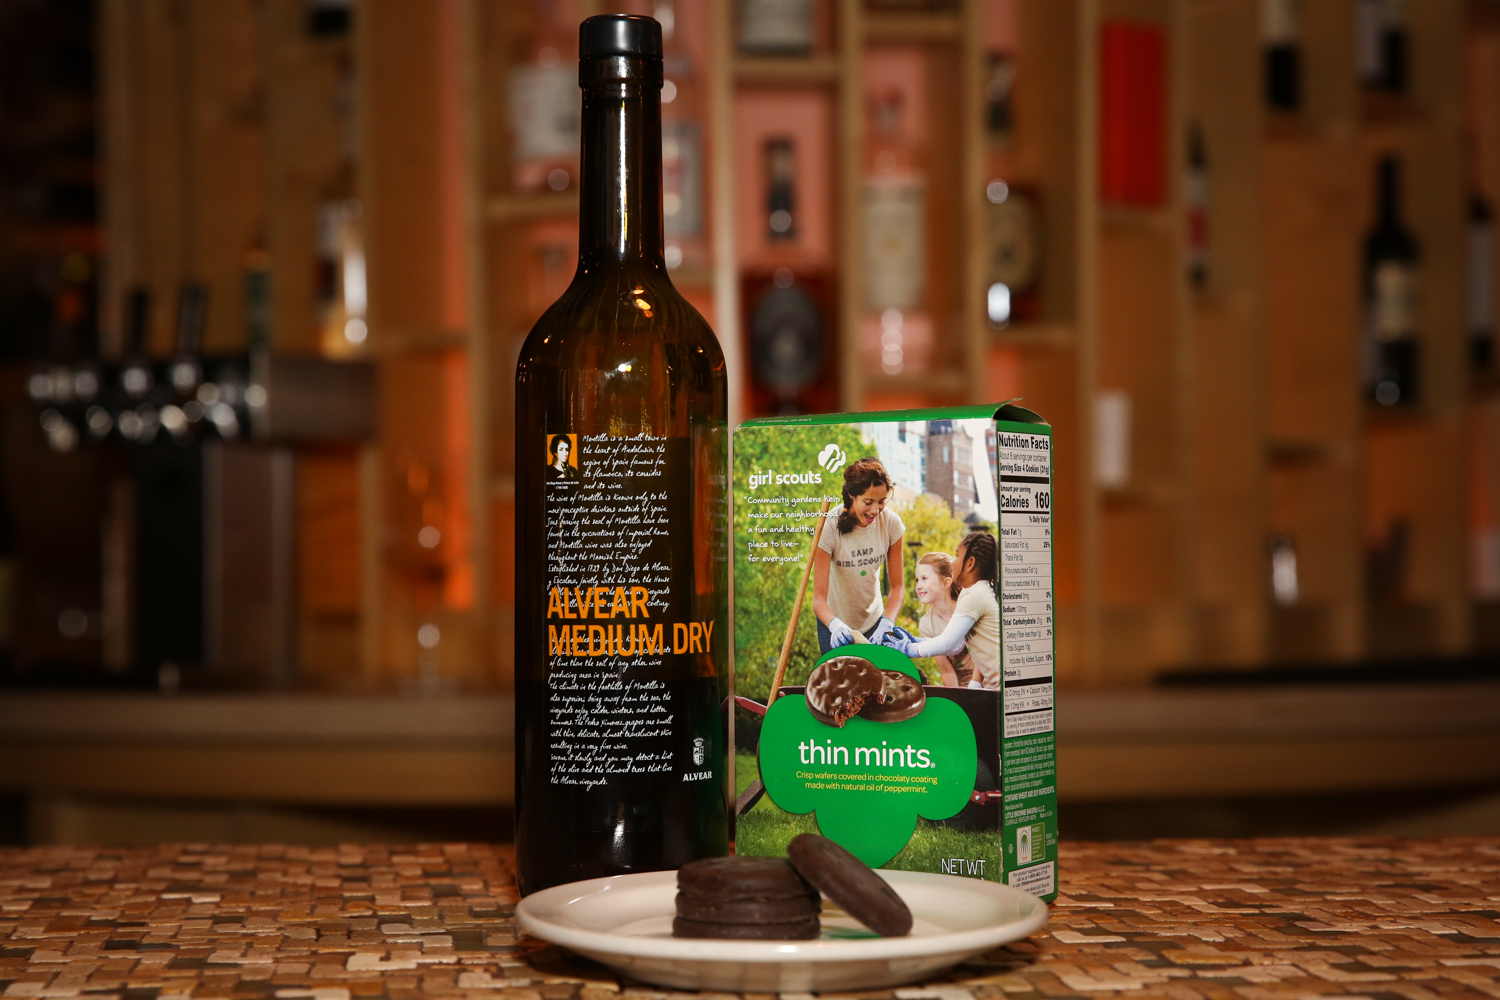 <p>Bose and Amir admitted the mint component made this cookie (the Girl Scouts' most popular, year after year) the most difficult for which to find a liquid mate. After uncorking a bunch of bottles to no avail, they went with a medium-dry style of sherry made from pedro ximenez grapes. Its dried fruit notes, salinity and low to medium acidity were eye-opening in the synergy with the cookie. Verdict: This was the most surprising match-up of the bunch. But if you are looking for a spirit alternative, Bose suggests Bourbon. What is a mint julep after all except Bourbon, sugar and mint?{&nbsp;} (Image: Amanda Andrade-Rhoades/ DC Refined)</p>